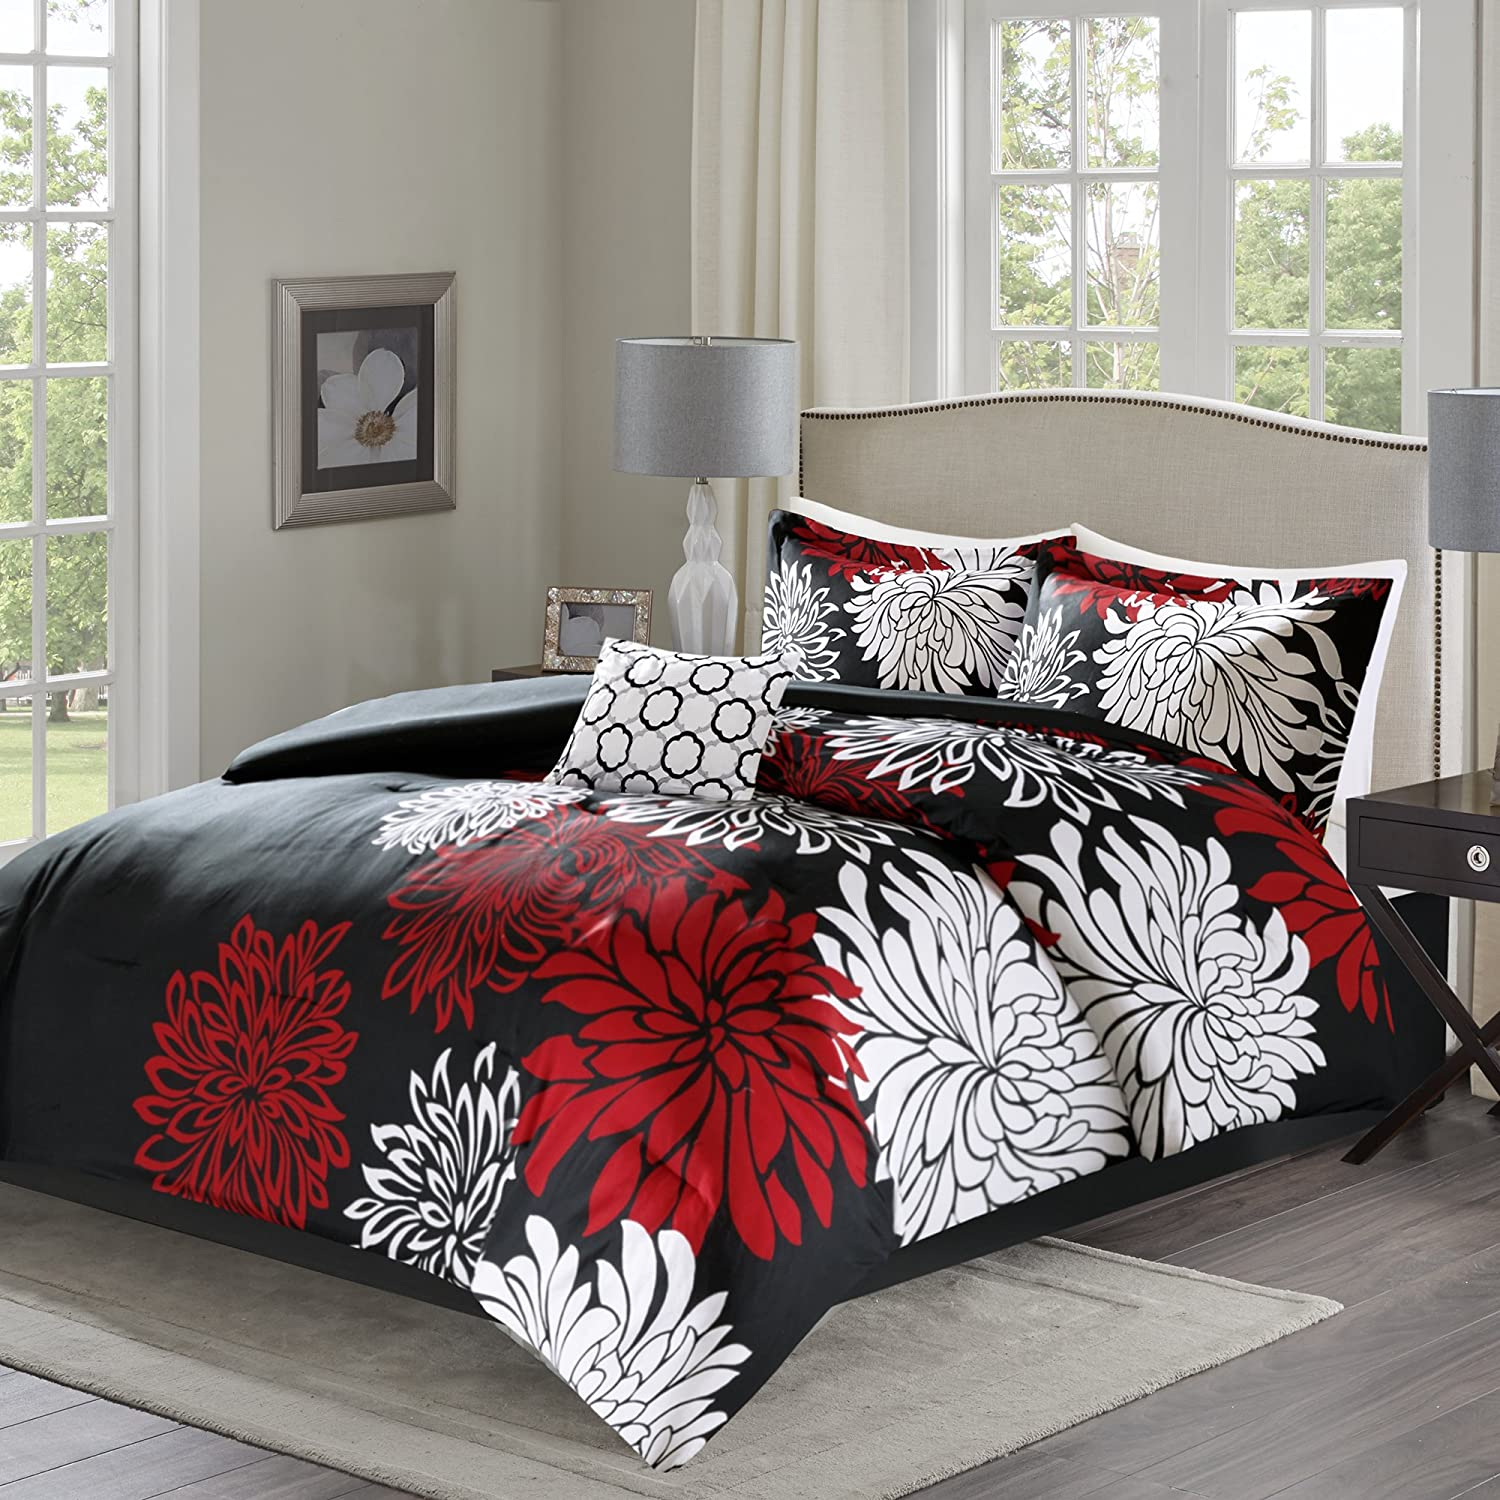 Comfort Spaces – Enya Comforter Set - 5 Piece – Black, Red – Floral Printed – Full/Queen Size